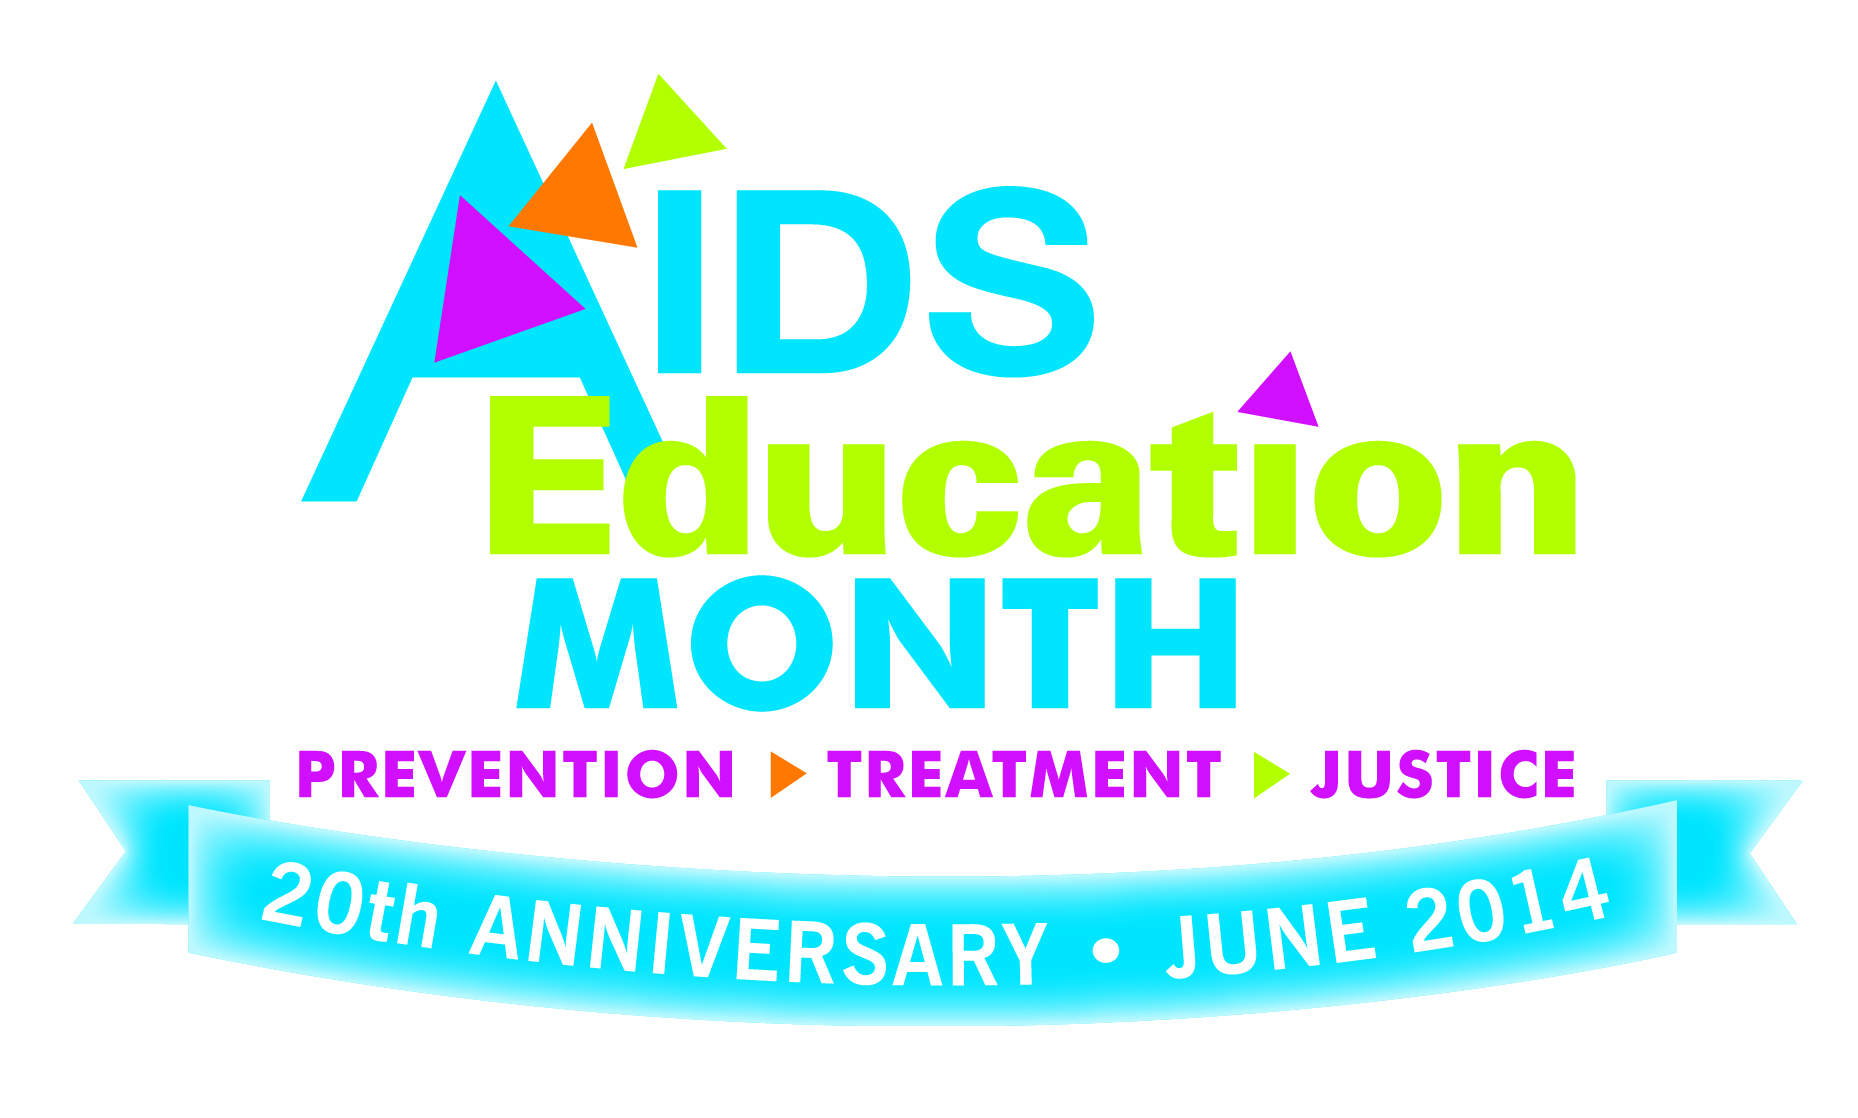 AIDS Education Month Philadelphia FIGHT